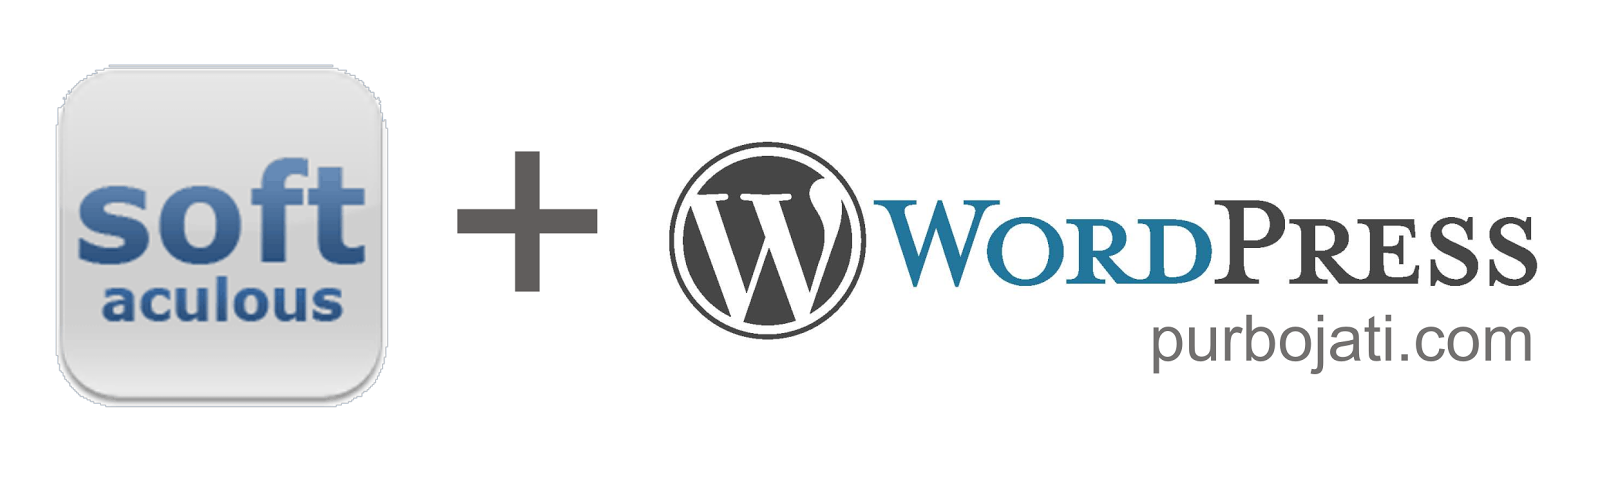 Cara Install Wordpress Lewat Softaculous